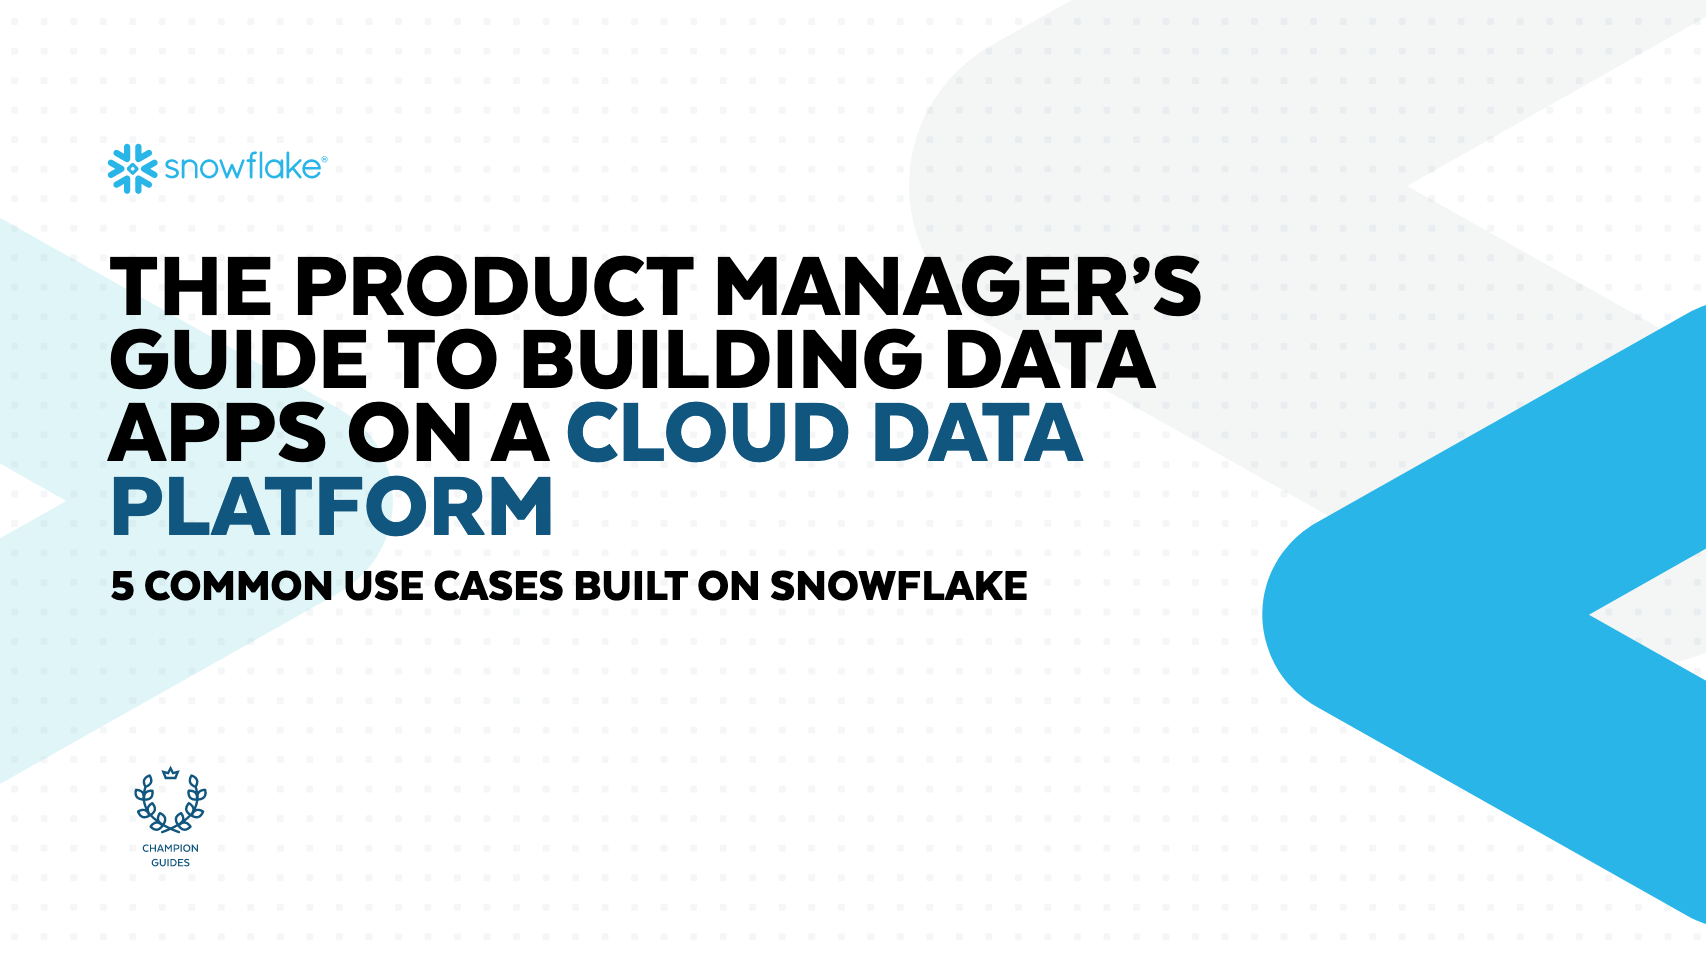 Screenshot 2020 10 19 the product managers guide to building data apps on a cloud data platform pdf - The Product Manager's Guide to Building Data Apps on a Cloud Data Platform